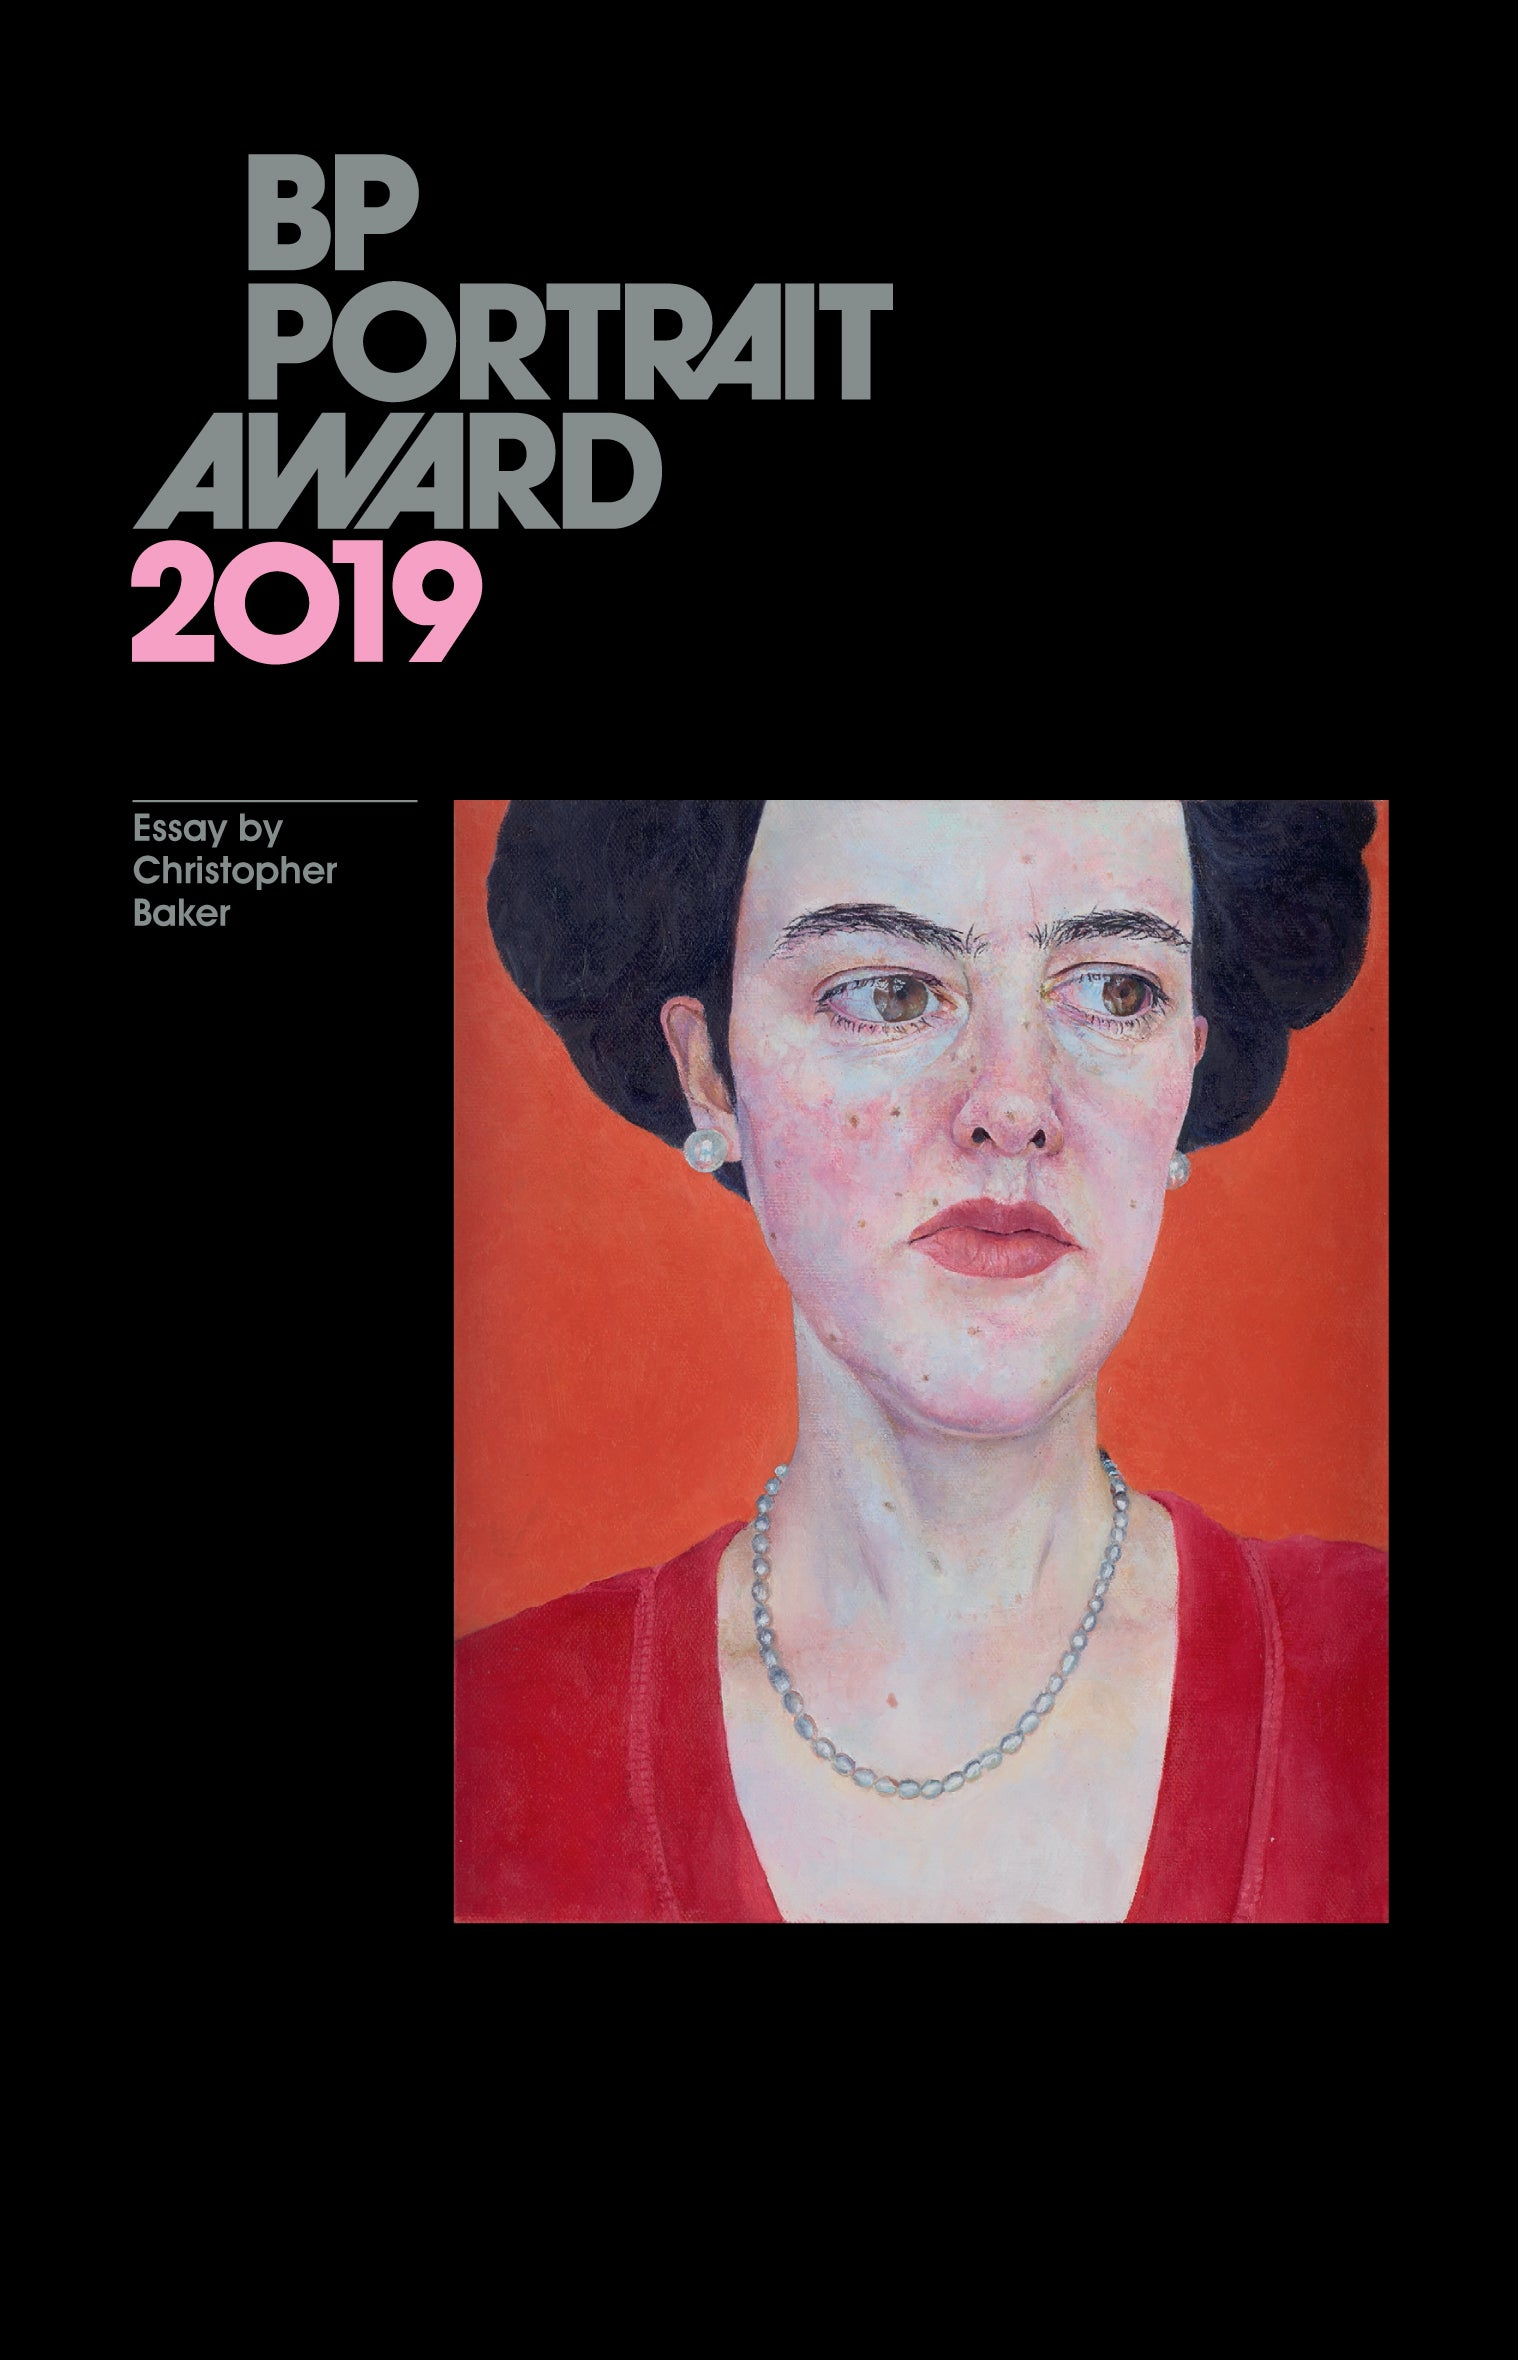 BP Portrait Award 2019 Paperback Catalogue